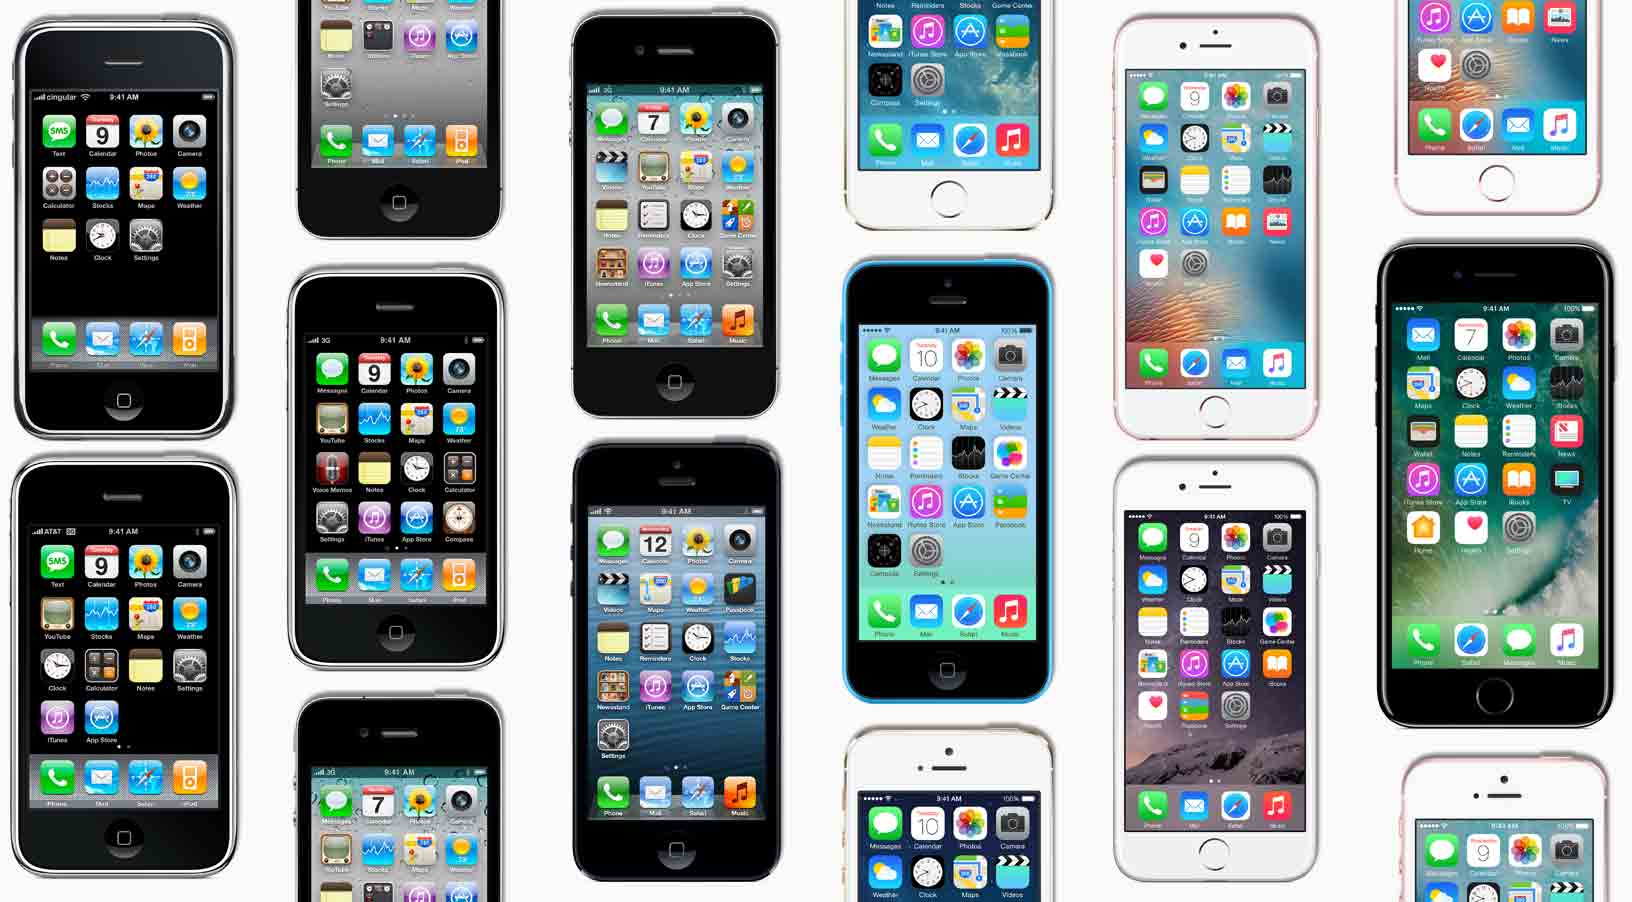 iPhone is turning 10 this year; A quick look at iPhone history